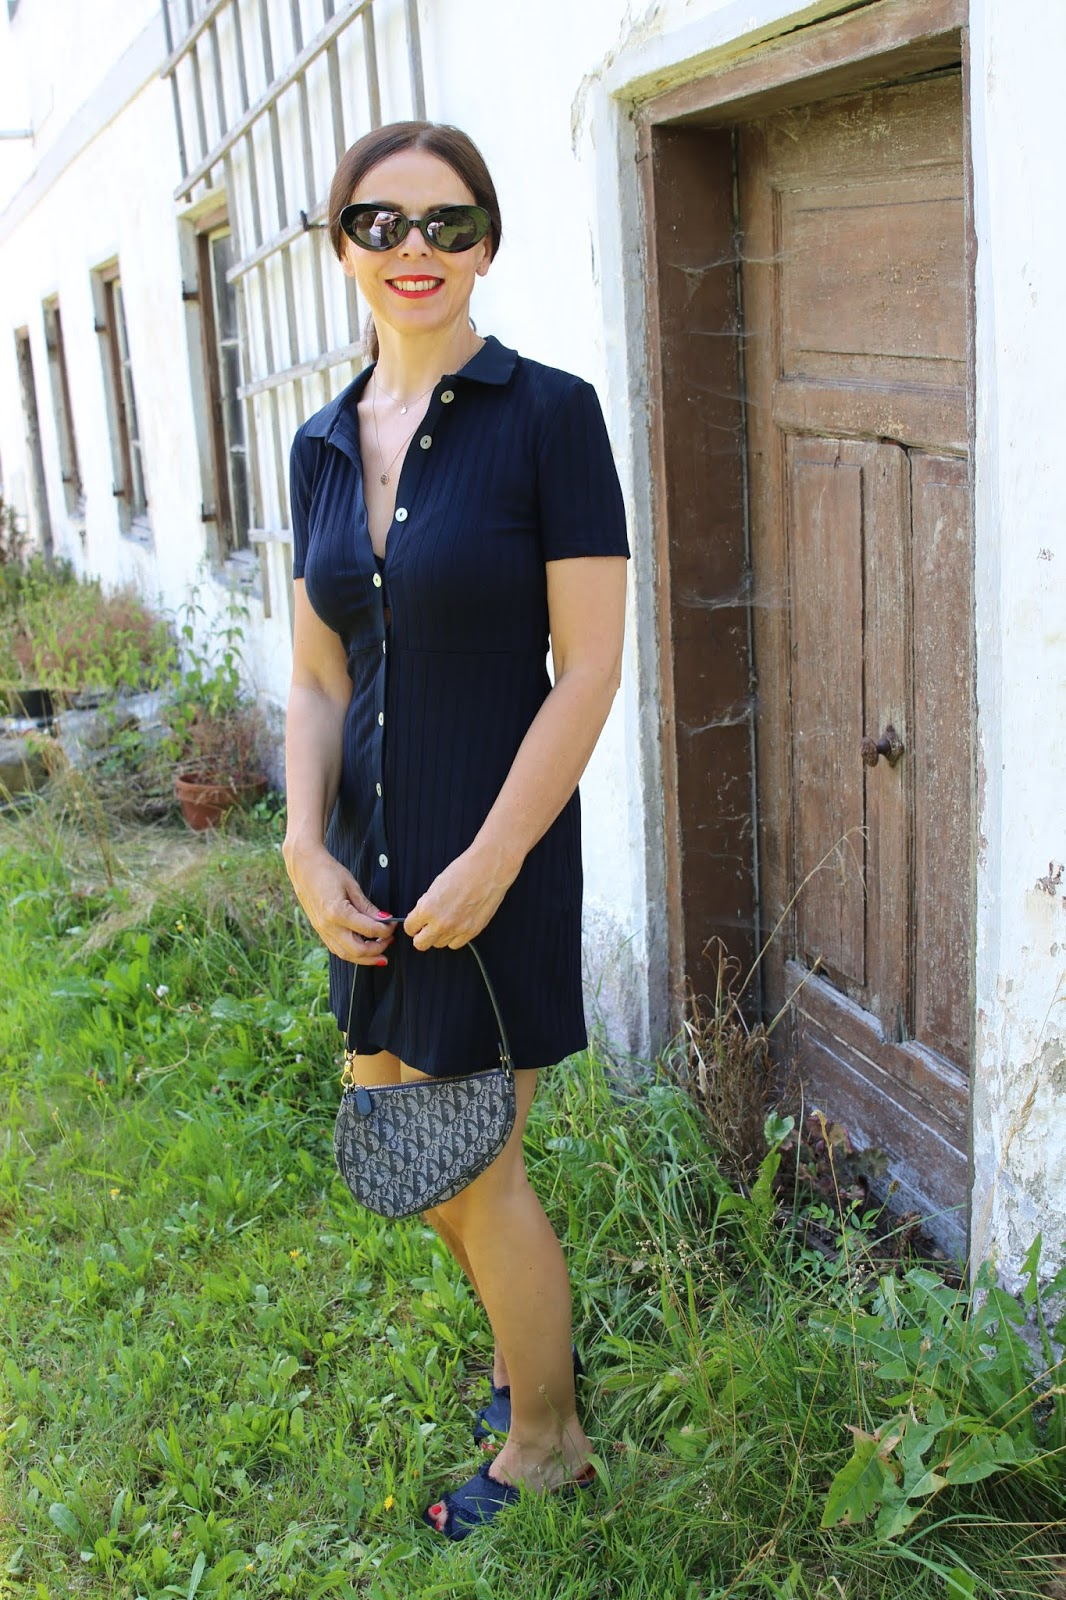 Bad Taste Outfit Vorschläge Here S A Quick Way To Improve Your Wardrobe Dressed With